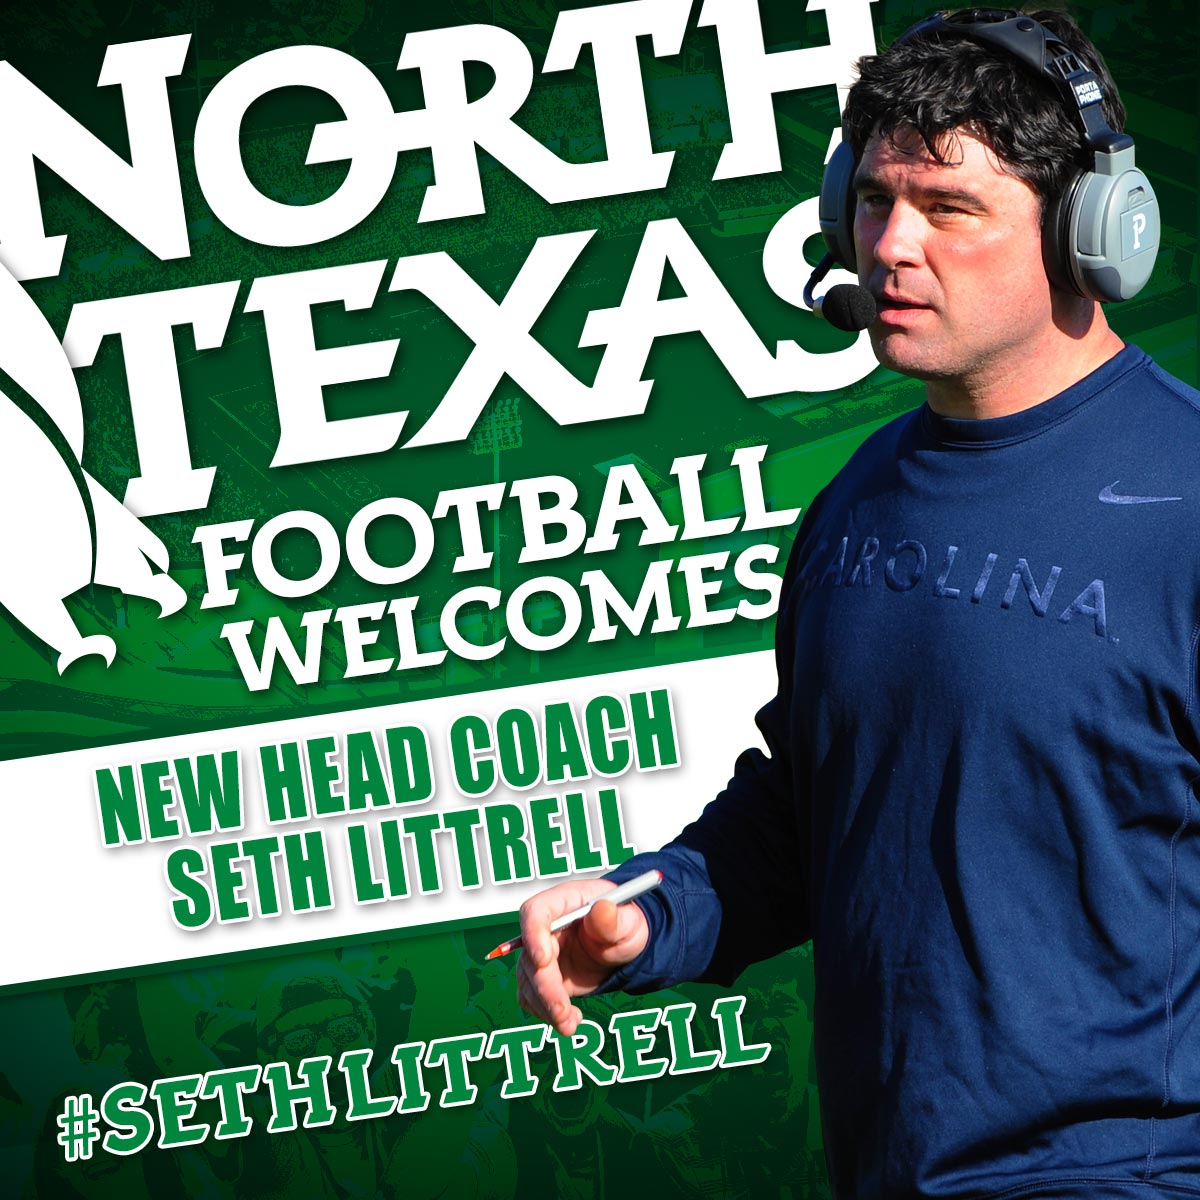 Welcome to North Texas #SethLittrell (@SethLittrell ). The new HC of #MeanGreen football.  https://t.co/5Lc82q10KQ https://t.co/BMXp7soiB0